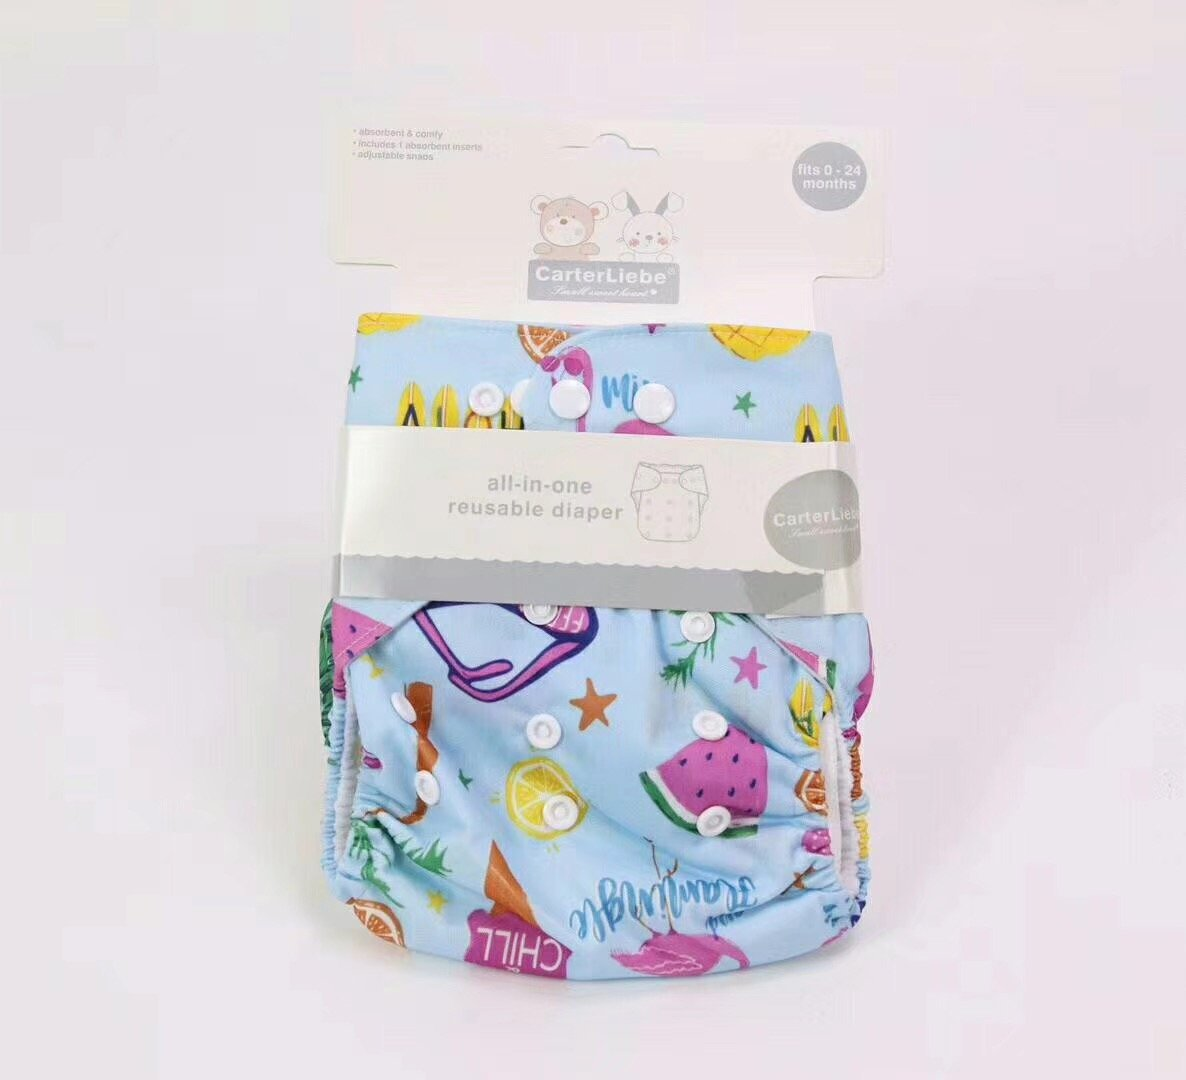 CarterLiebe All-In-One Reusable Diaper - Offspring